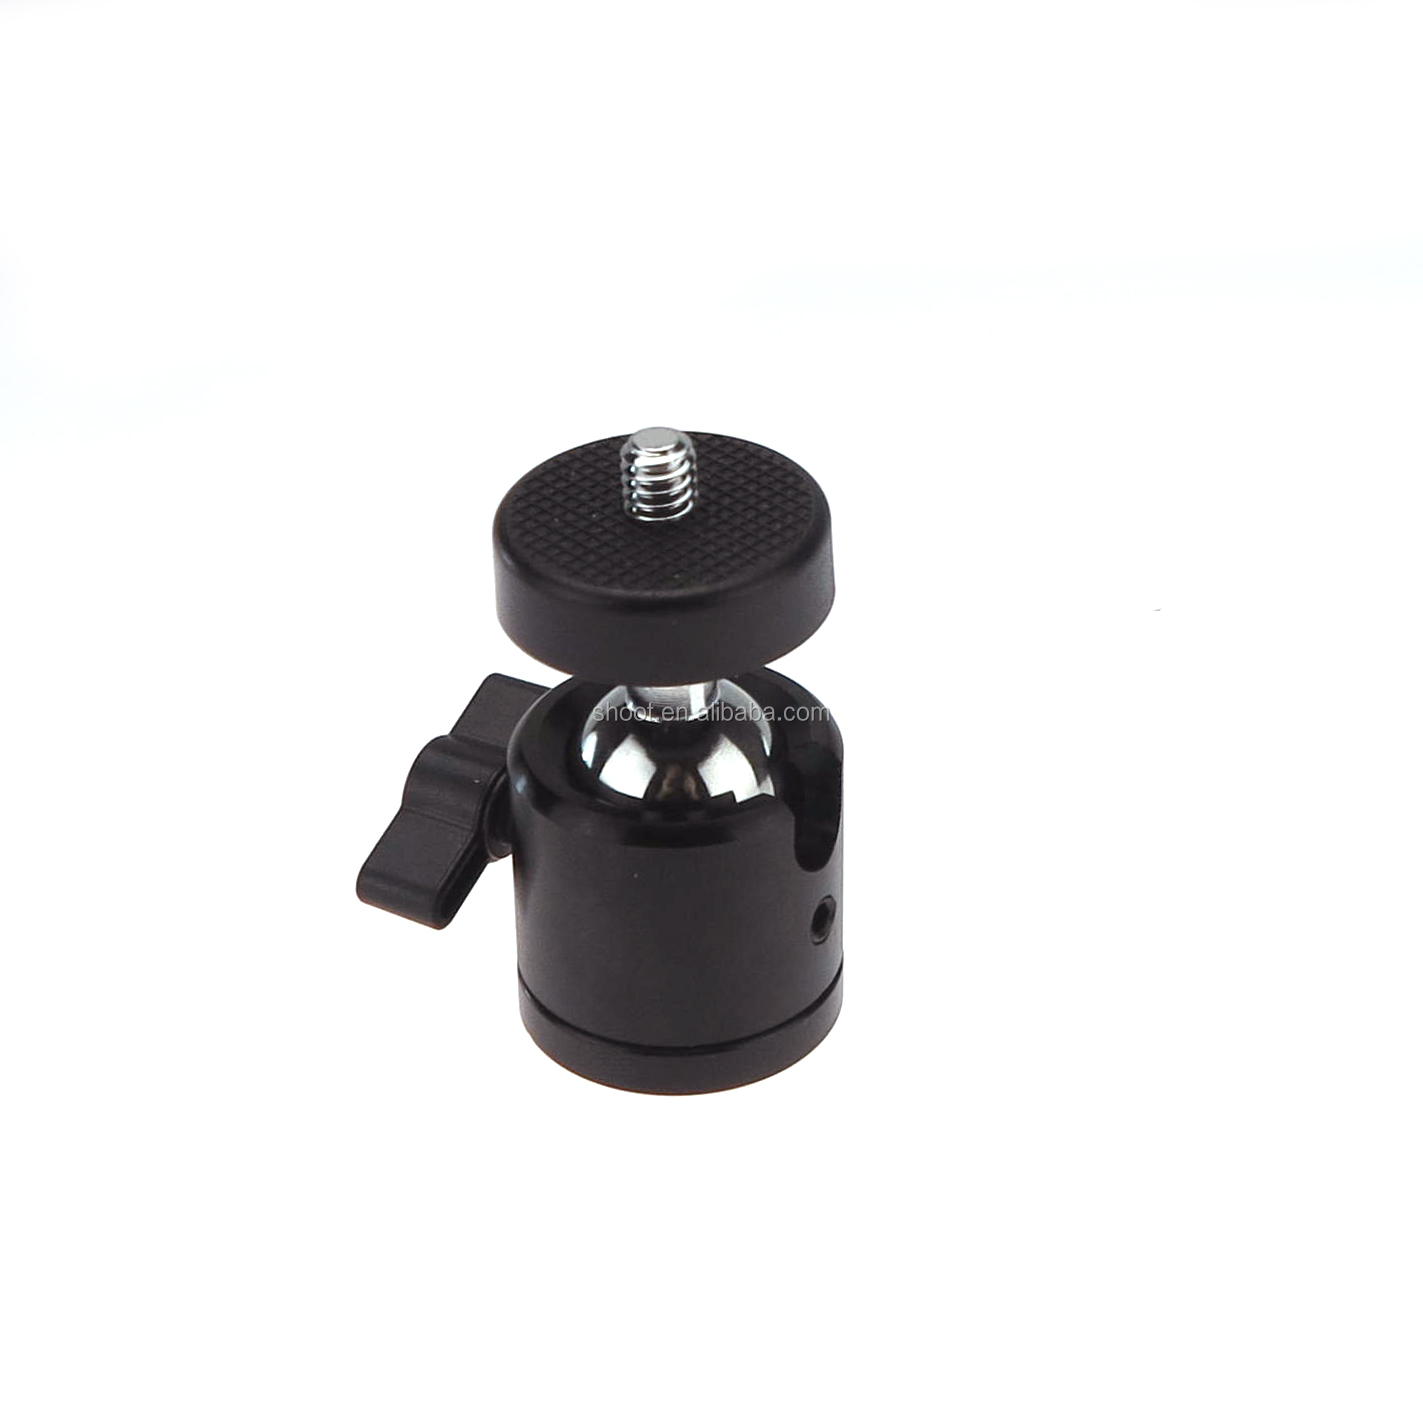 "Hot selling 1/4"" 3/8"" Mini Ball Head Camera Cold Shoe Light Bracket/Holder/Mount"